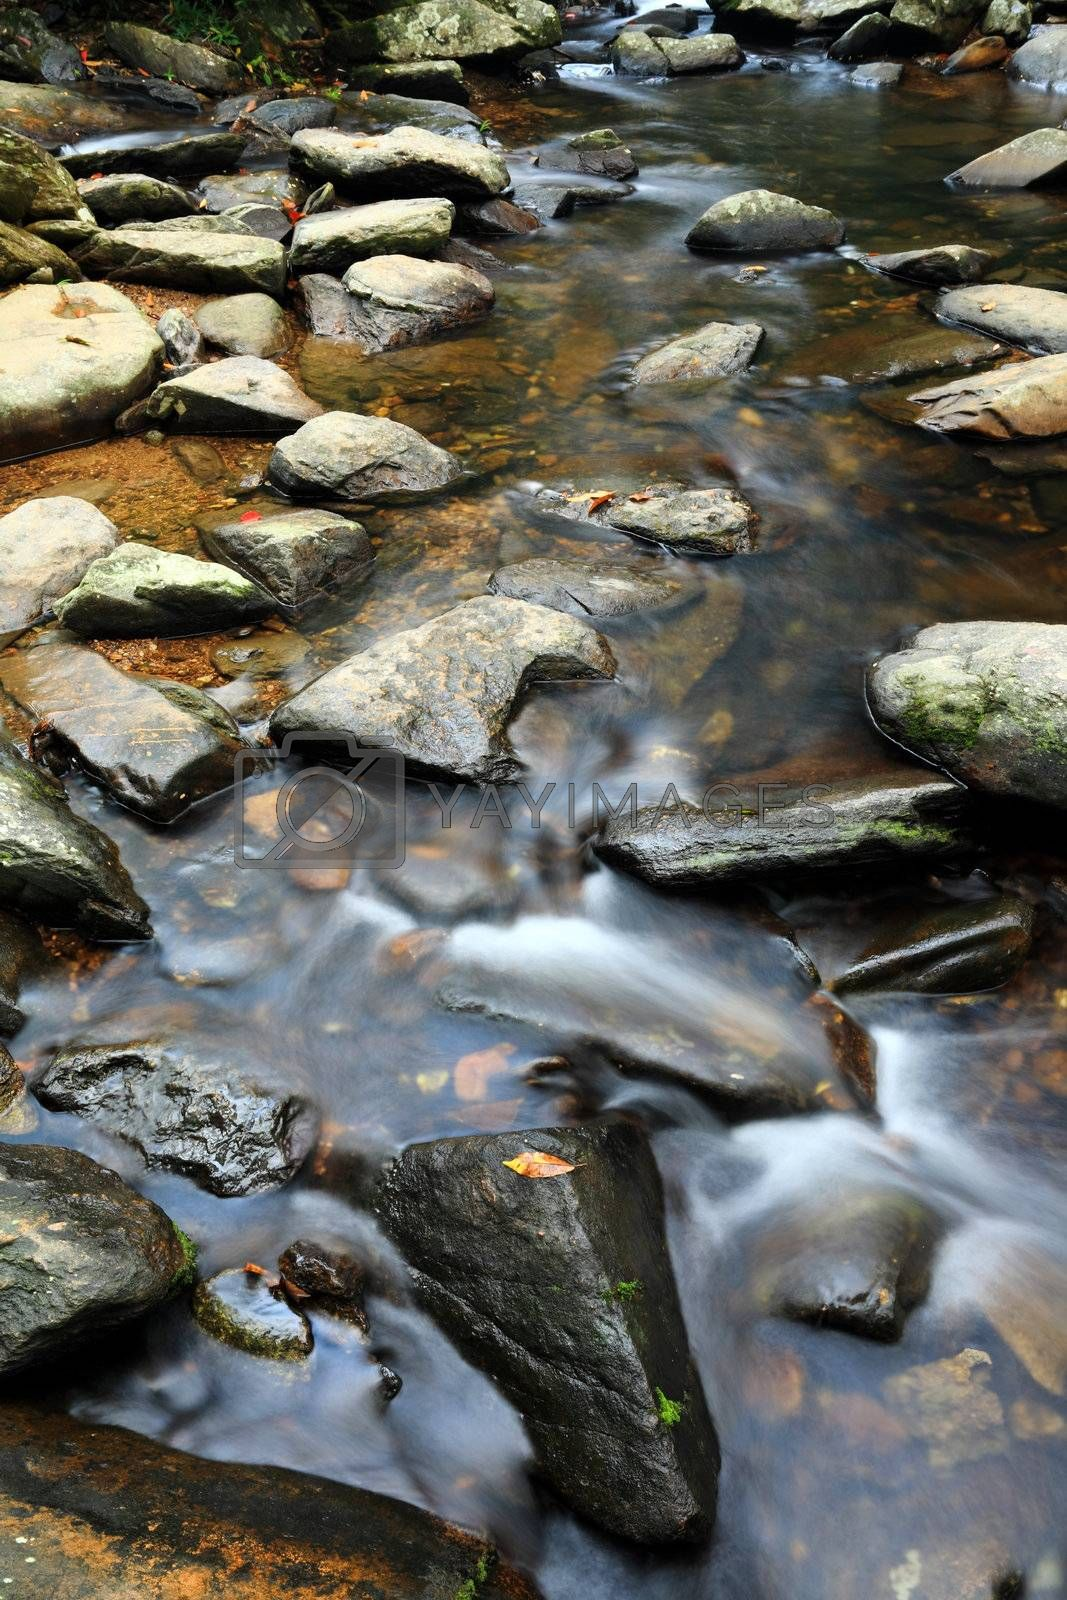 Royalty free image of water spring in forest by leungchopan